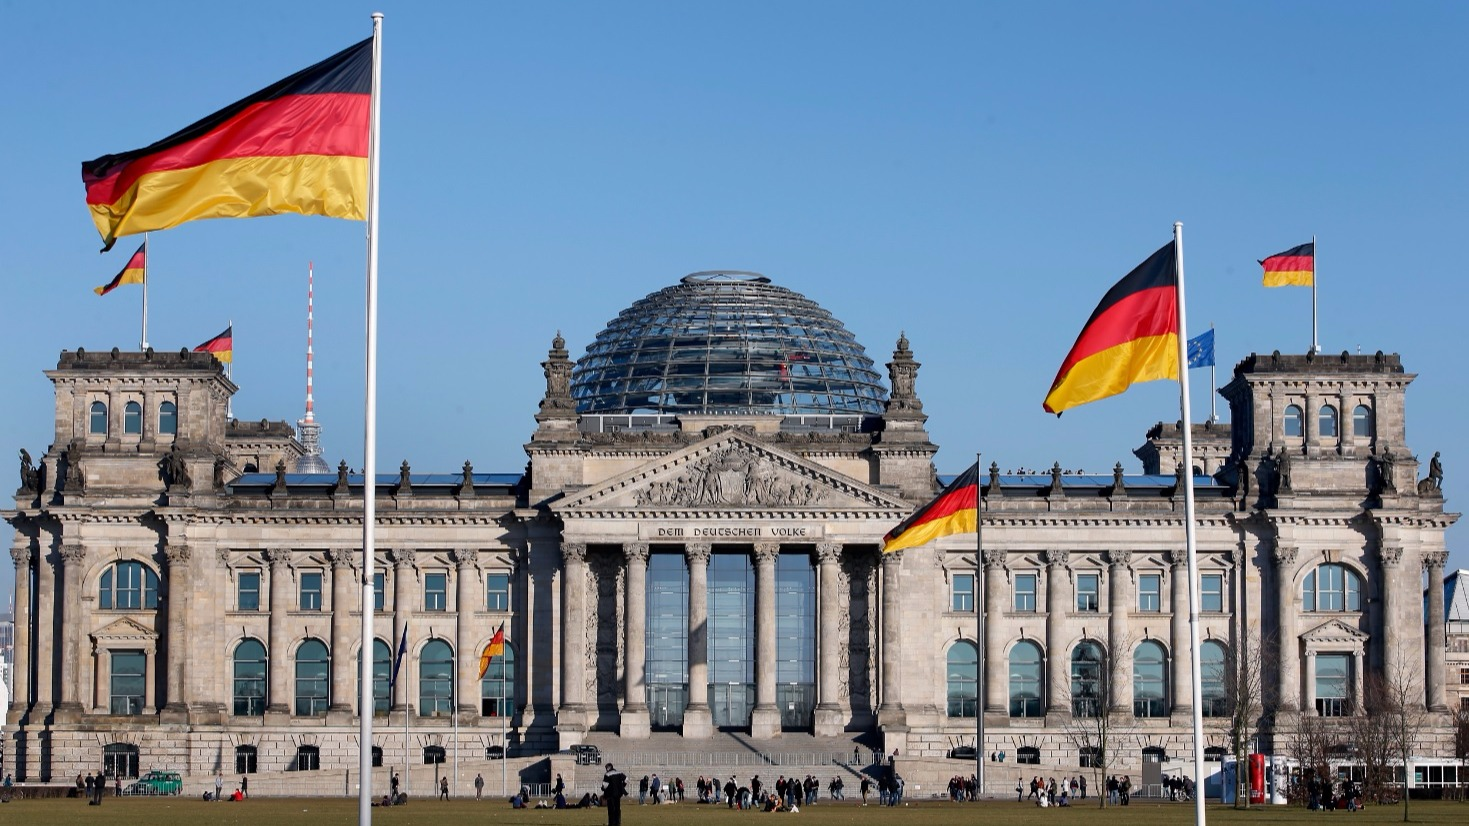 Germany has long been one of the most powerful nations in the world. Every time the country has been ravaged by war and internal conflict in the past, the economy has been able to recover. The German economy consistently ranks in the top 10, thanks to its extremely skilled and highly educated population.Located in central-western Europe, Germany is a well-developed nation with a high standard of living. It is one of the largest exporters and has a very strong global economic influence. It also has a strong global political influence and has strong international relations.Germany is a member of the United Nations and North Atlantic Treaty Organization and is heavily involved in issues concerning global security. Known for having a rich cultural history and for having some of the most beautiful cities in the world, Germany also has a powerful military and has a very competent government led by leaders well-versed in all manners of political and economic affairs.